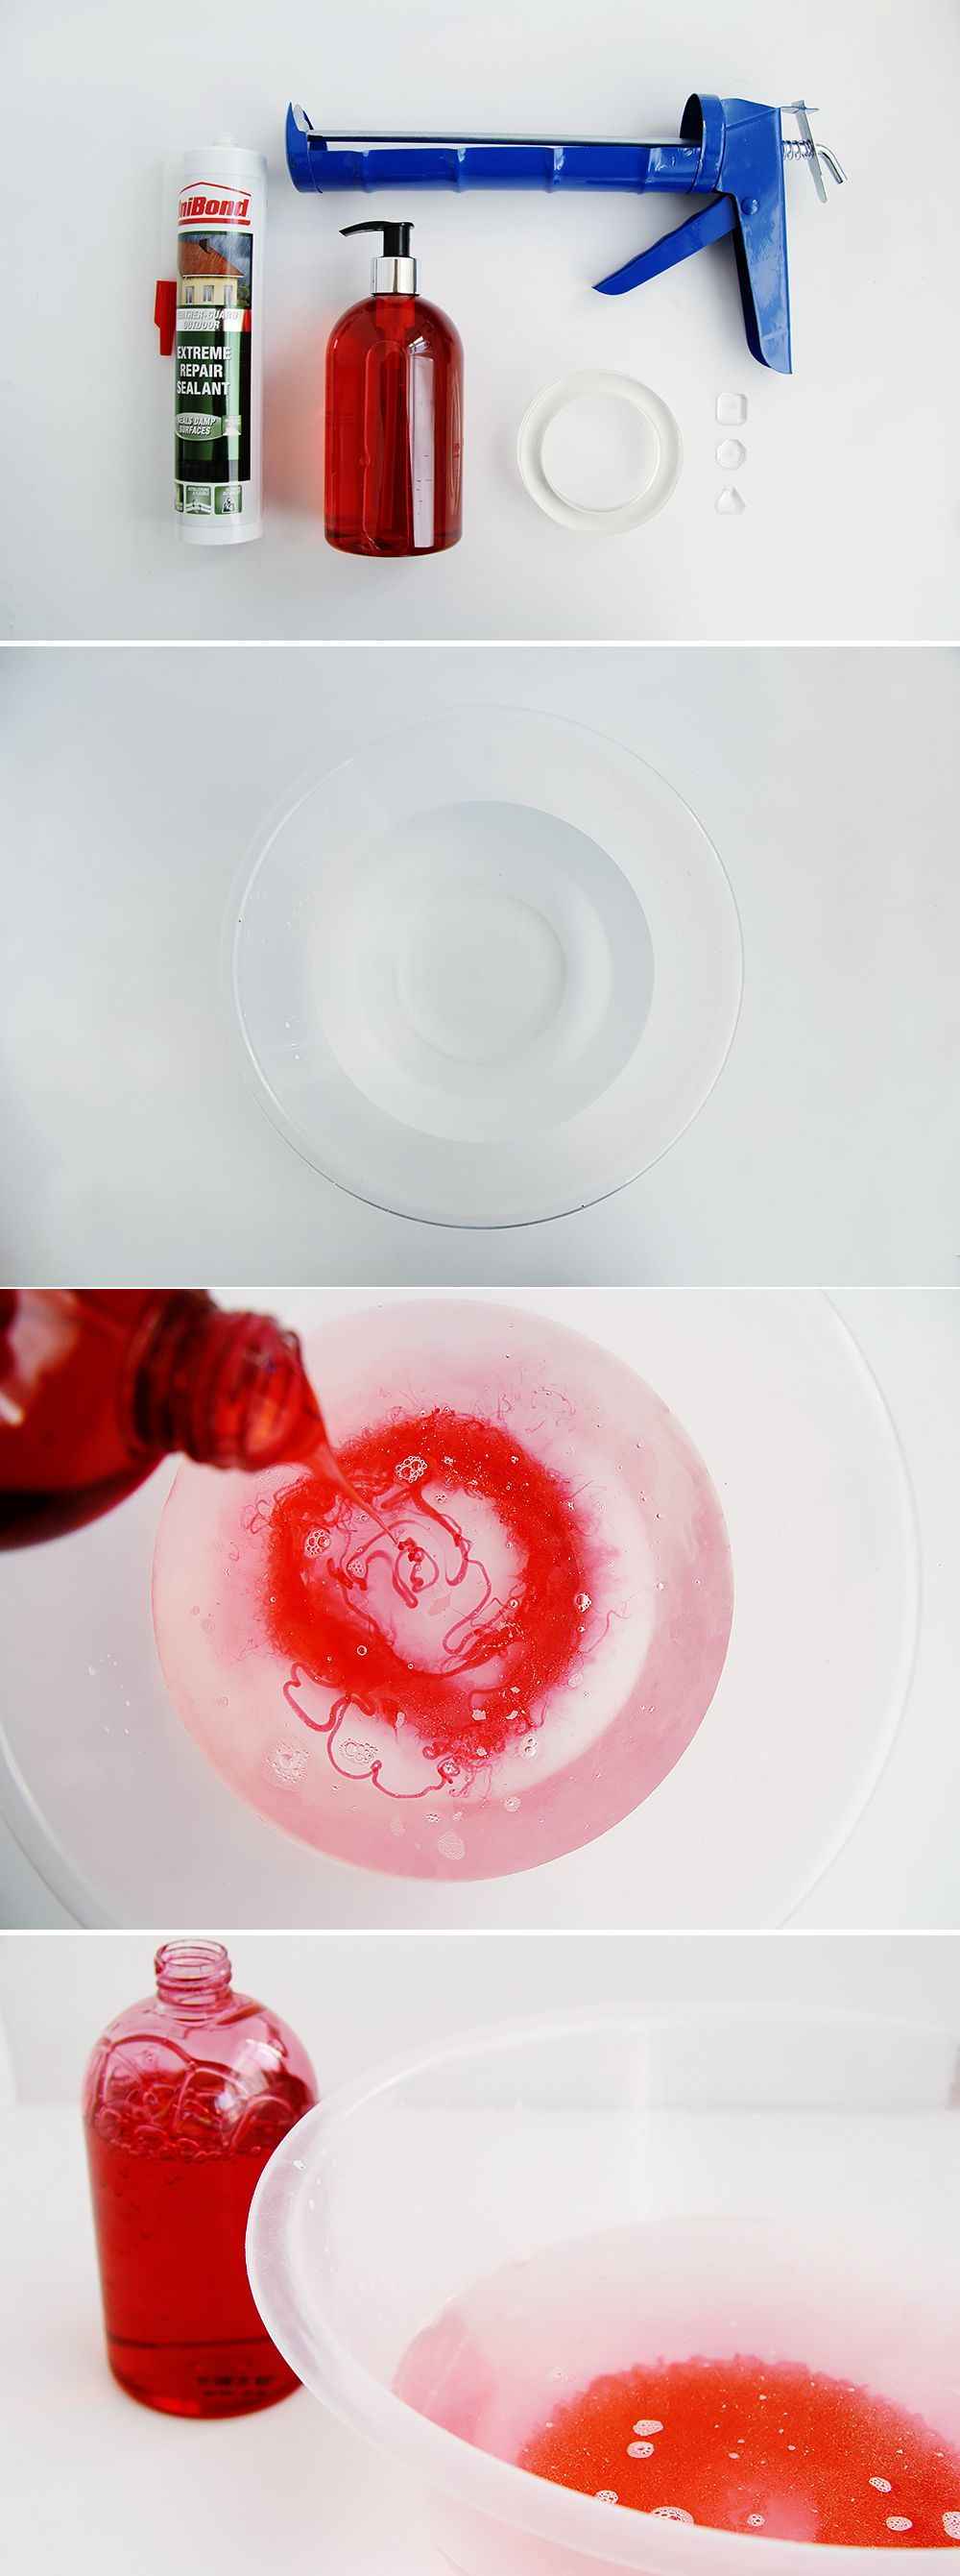 How to make a diy silicone mold this would be great for creating